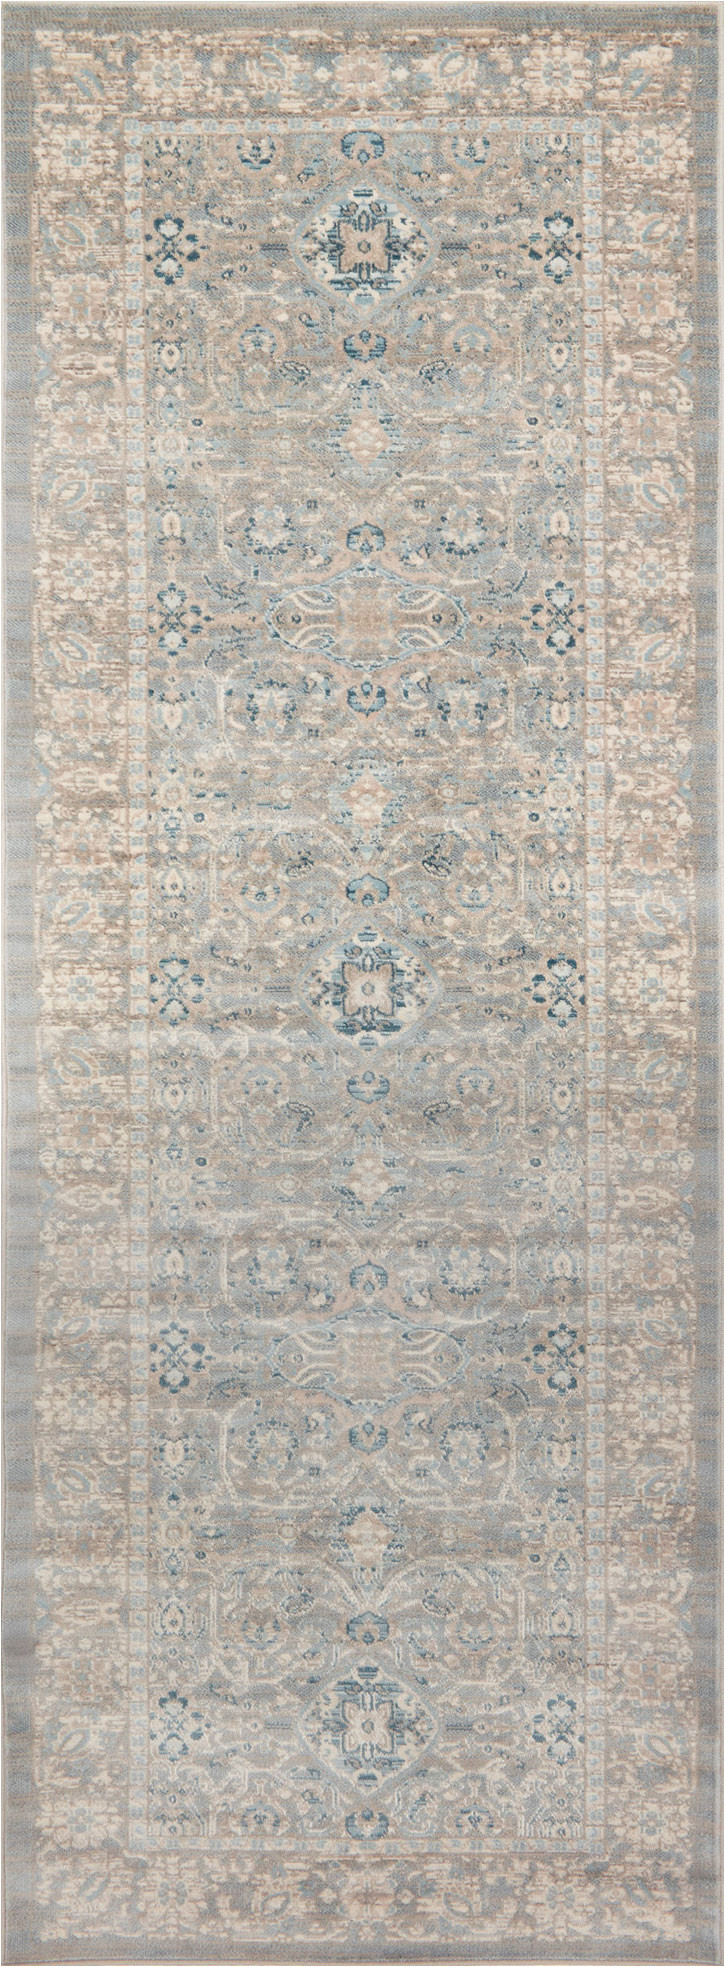 Magnolia Home Ella Rose Blue Rug Ella Rose Ej 04 Steel Steel area Rug Magnolia Home by Joanna Gaines